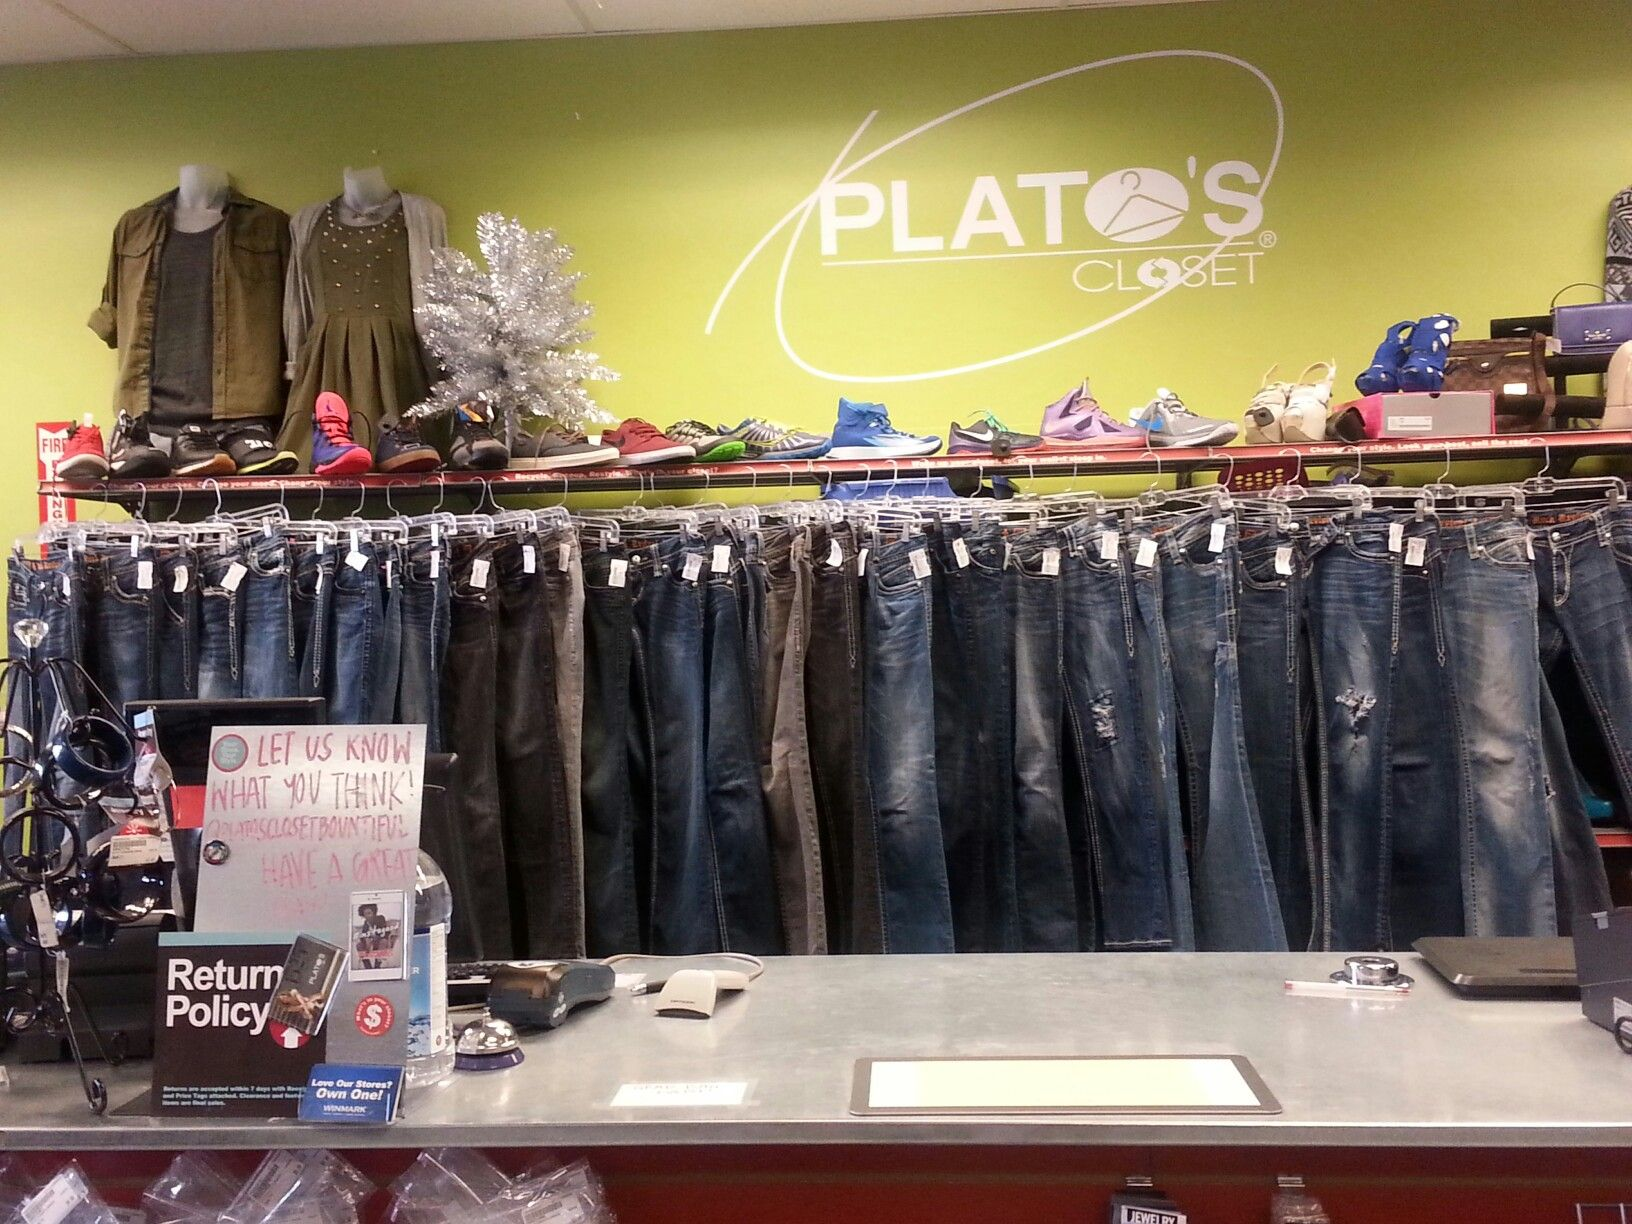 Fashion corner bountiful utah - Huge Selection Of Rock Revival Jeans Less Than Retail Right Now At Plato S Closet Bountiful Men S Sizes 42 All Women S Sizes